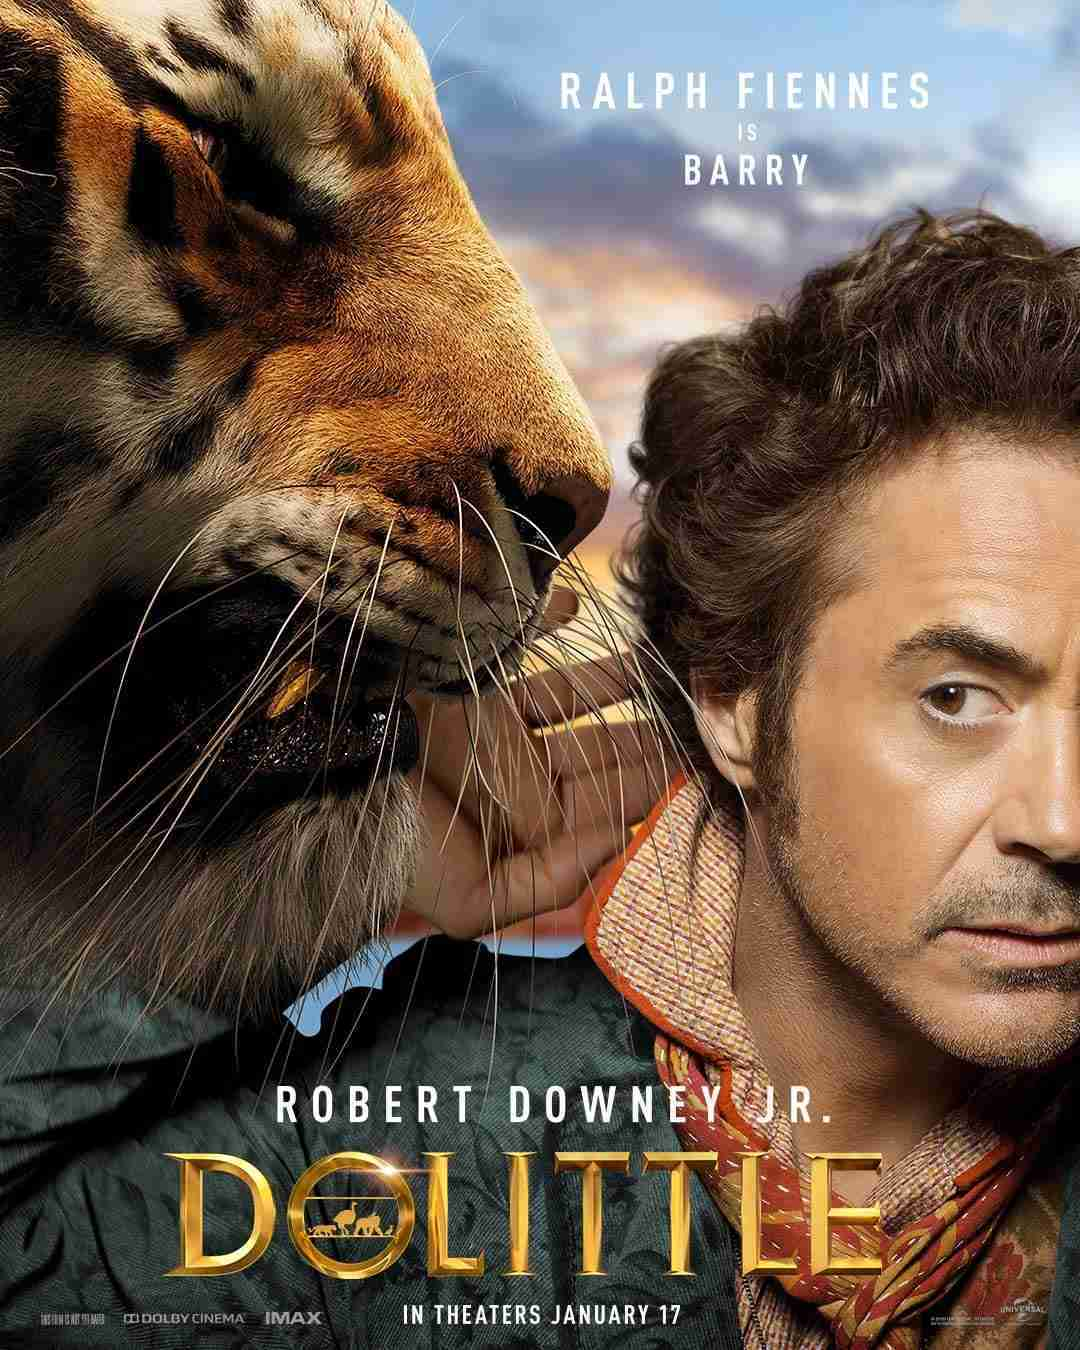 Robert Downey Jr. as Dr. Dolittle poses with Ralph Fiennes' character, Barry the Tiger.